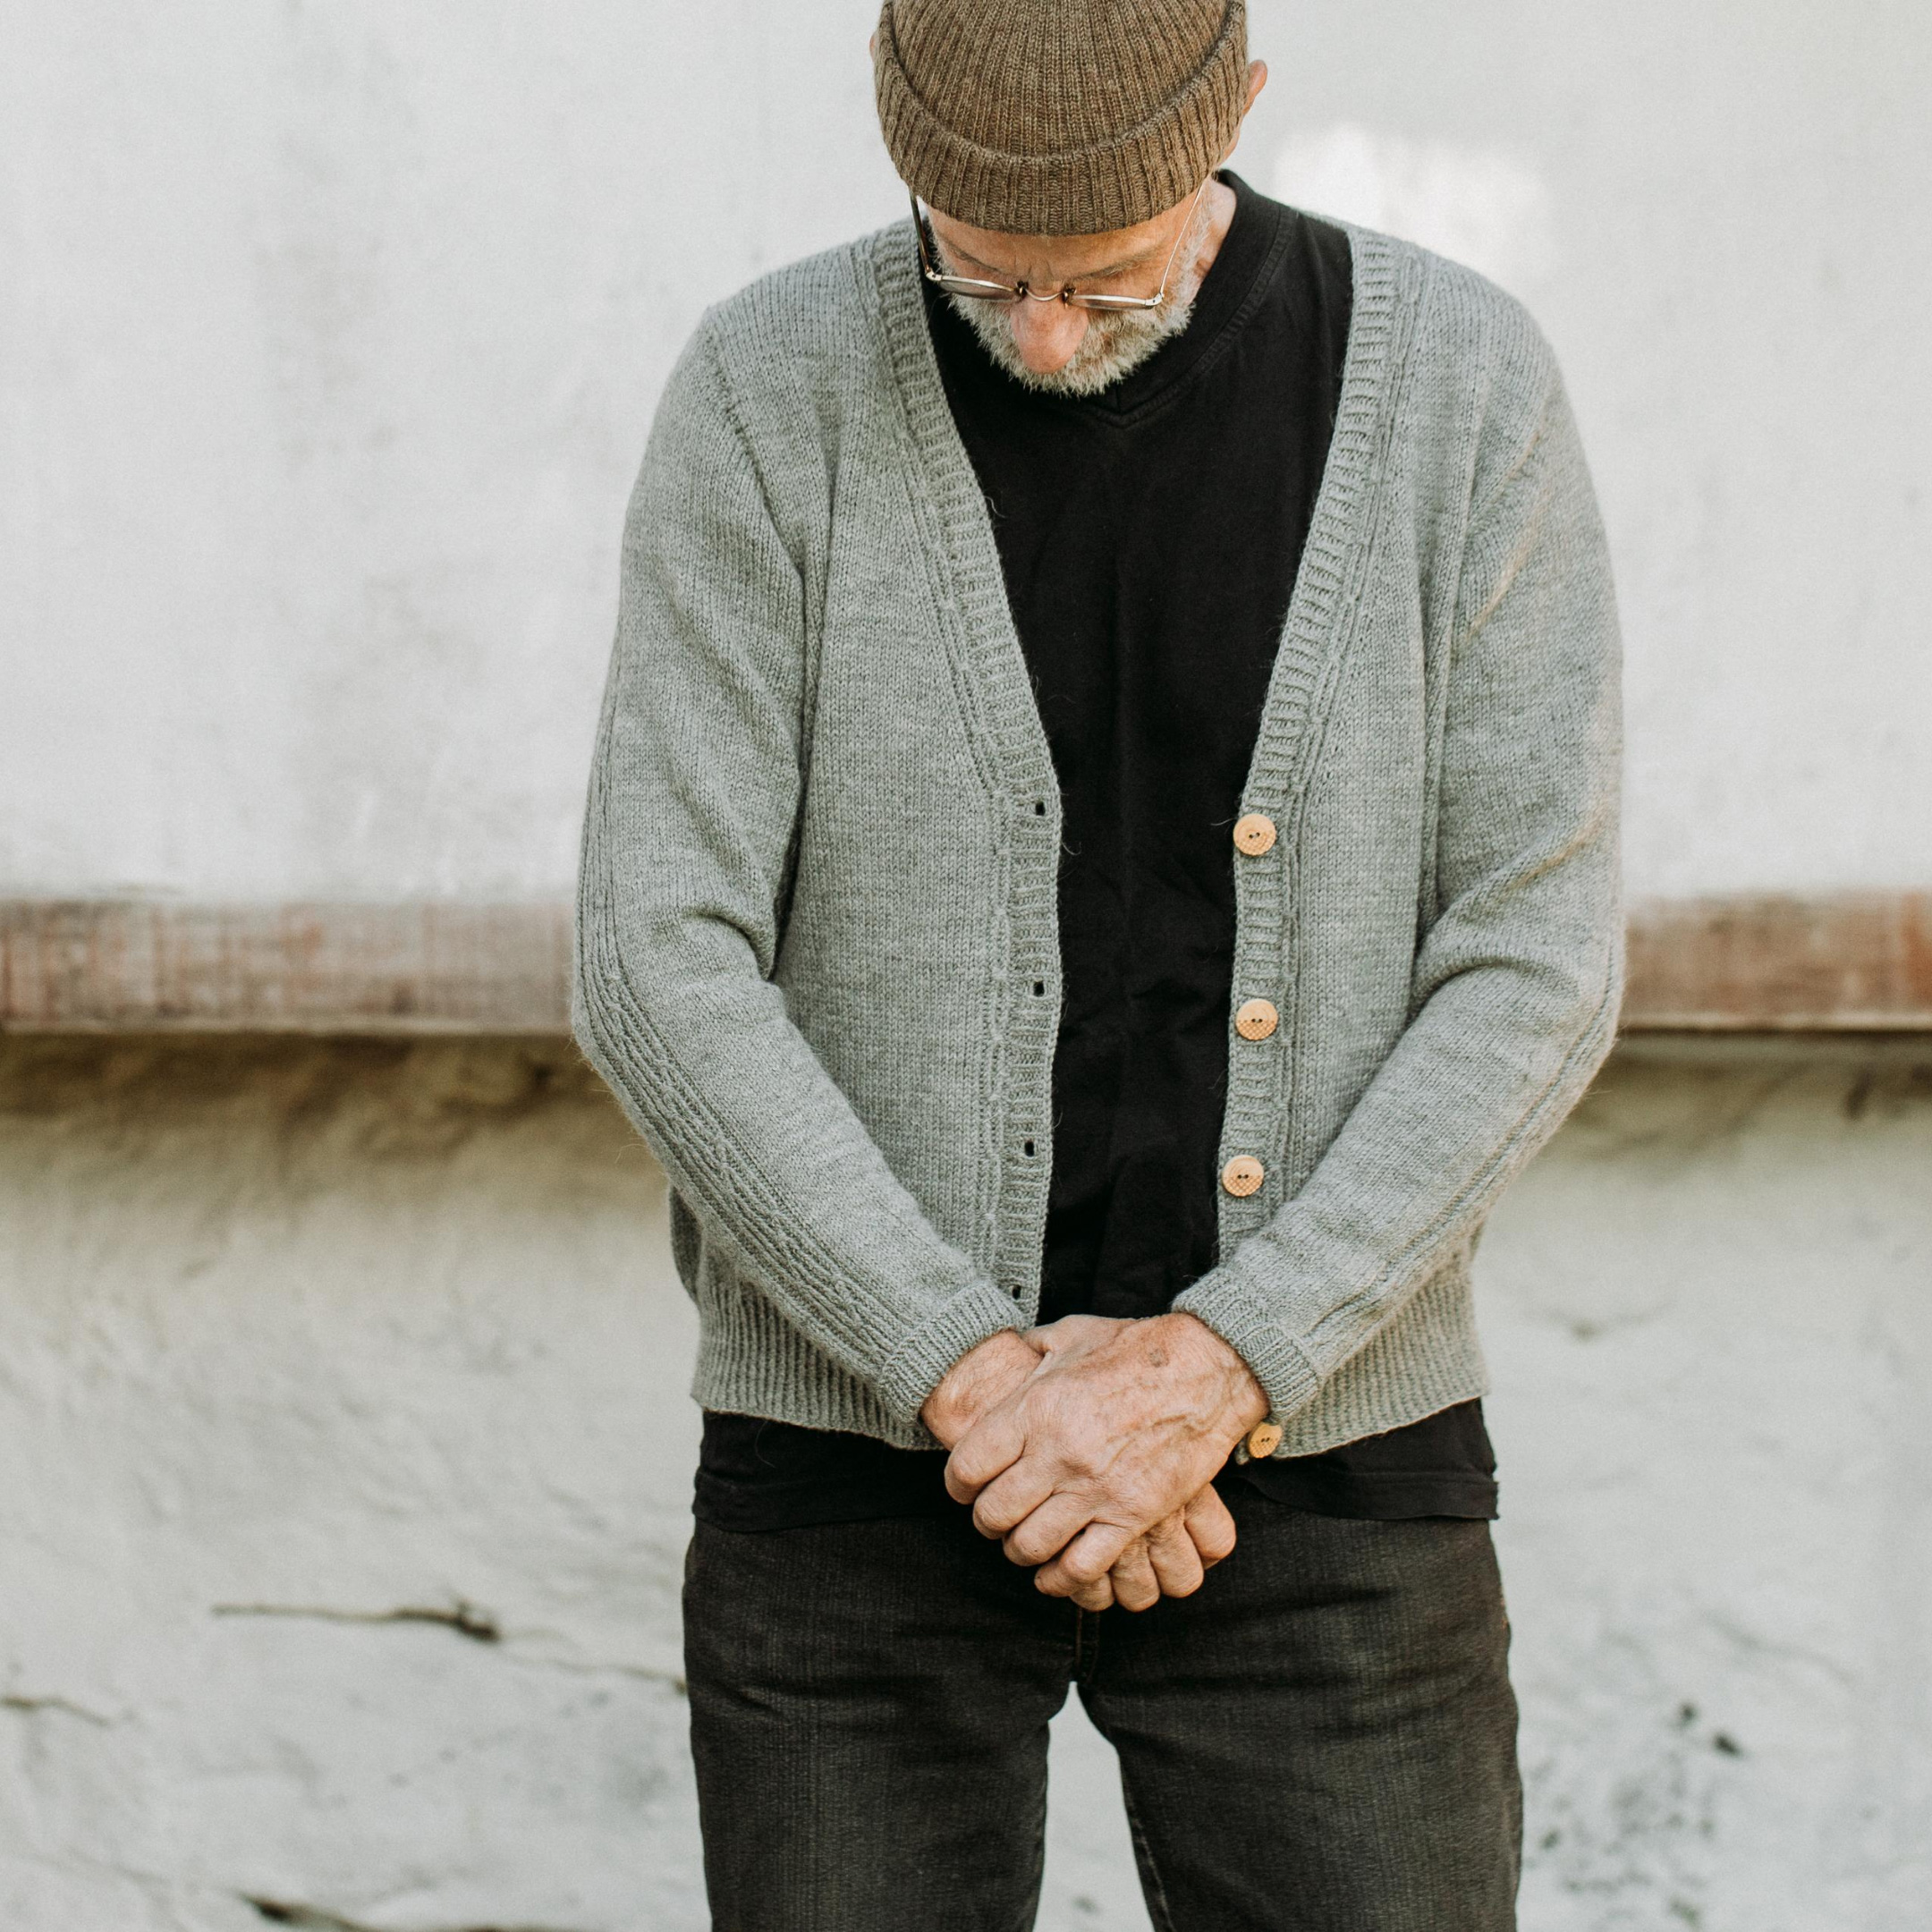 Ingemar is wearing a v-neck cardigan over a black t-shirt and jeans. He has his hands clasped in front of him and he's looking down. Lowther Cardigan Knitting Pattern